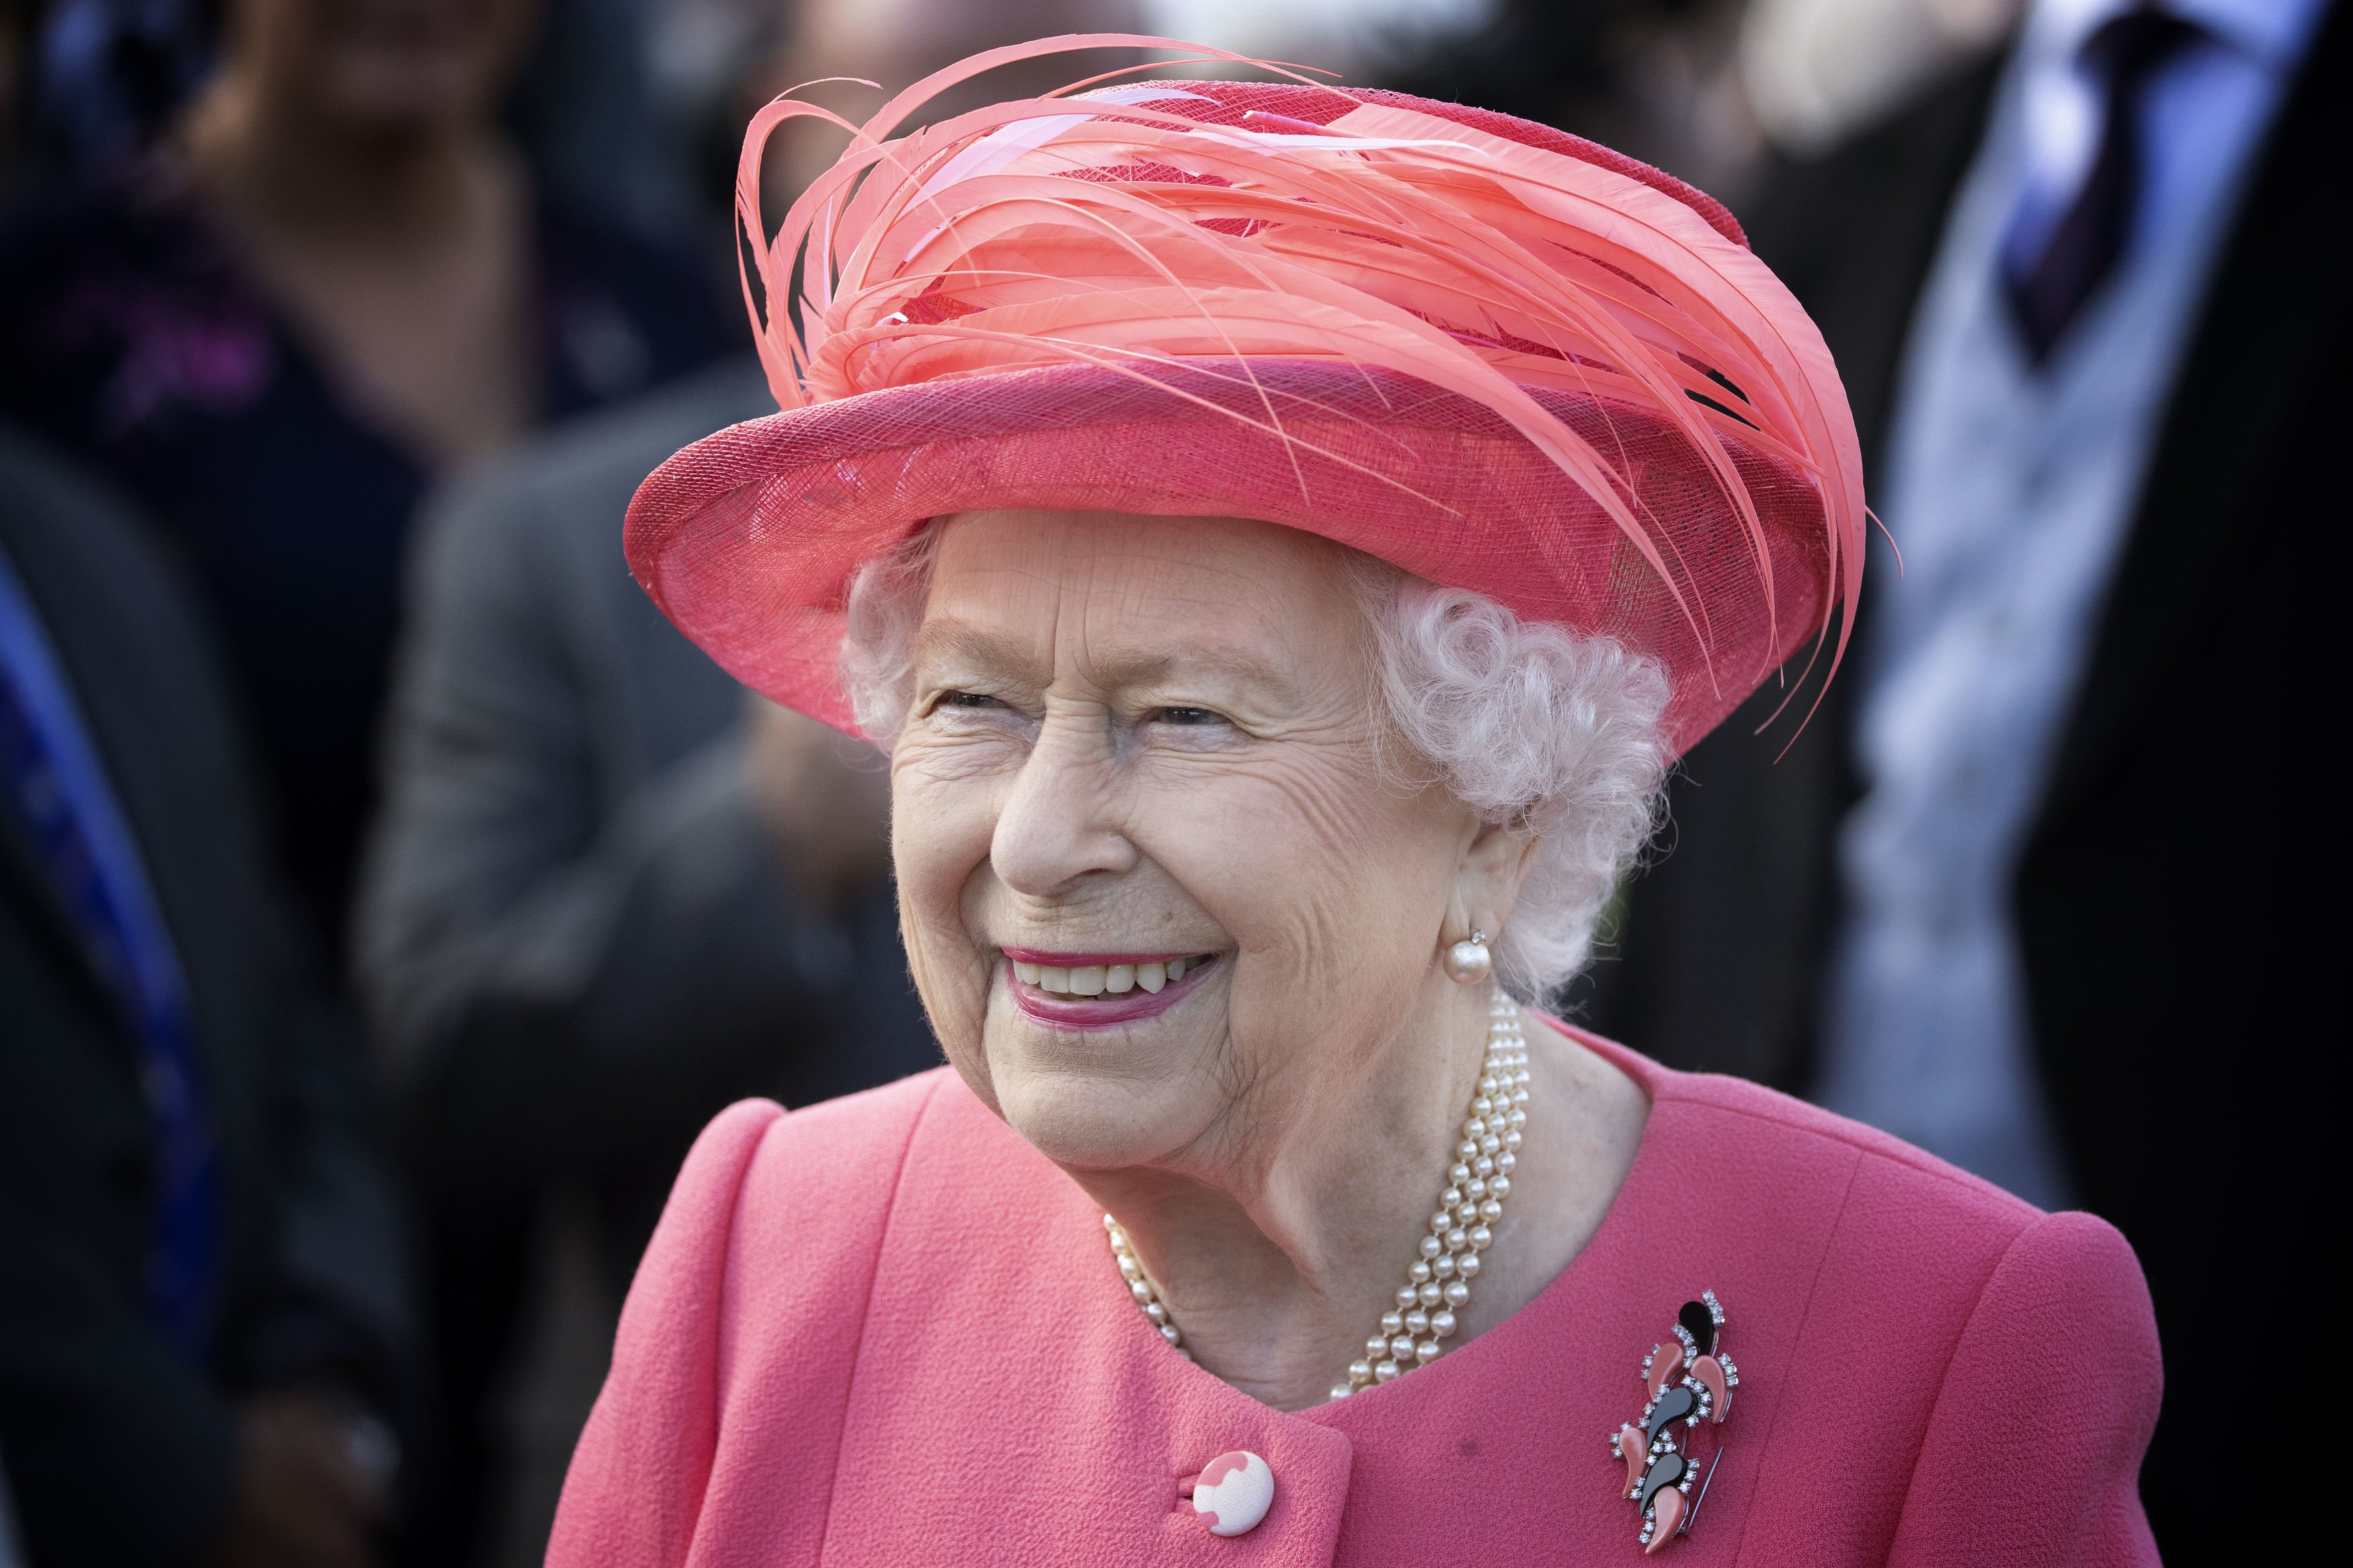 La reine Elizabeth assiste à une Garden Party au Palais de Holyroodhouse en Ecosse | Photo : Getty Images